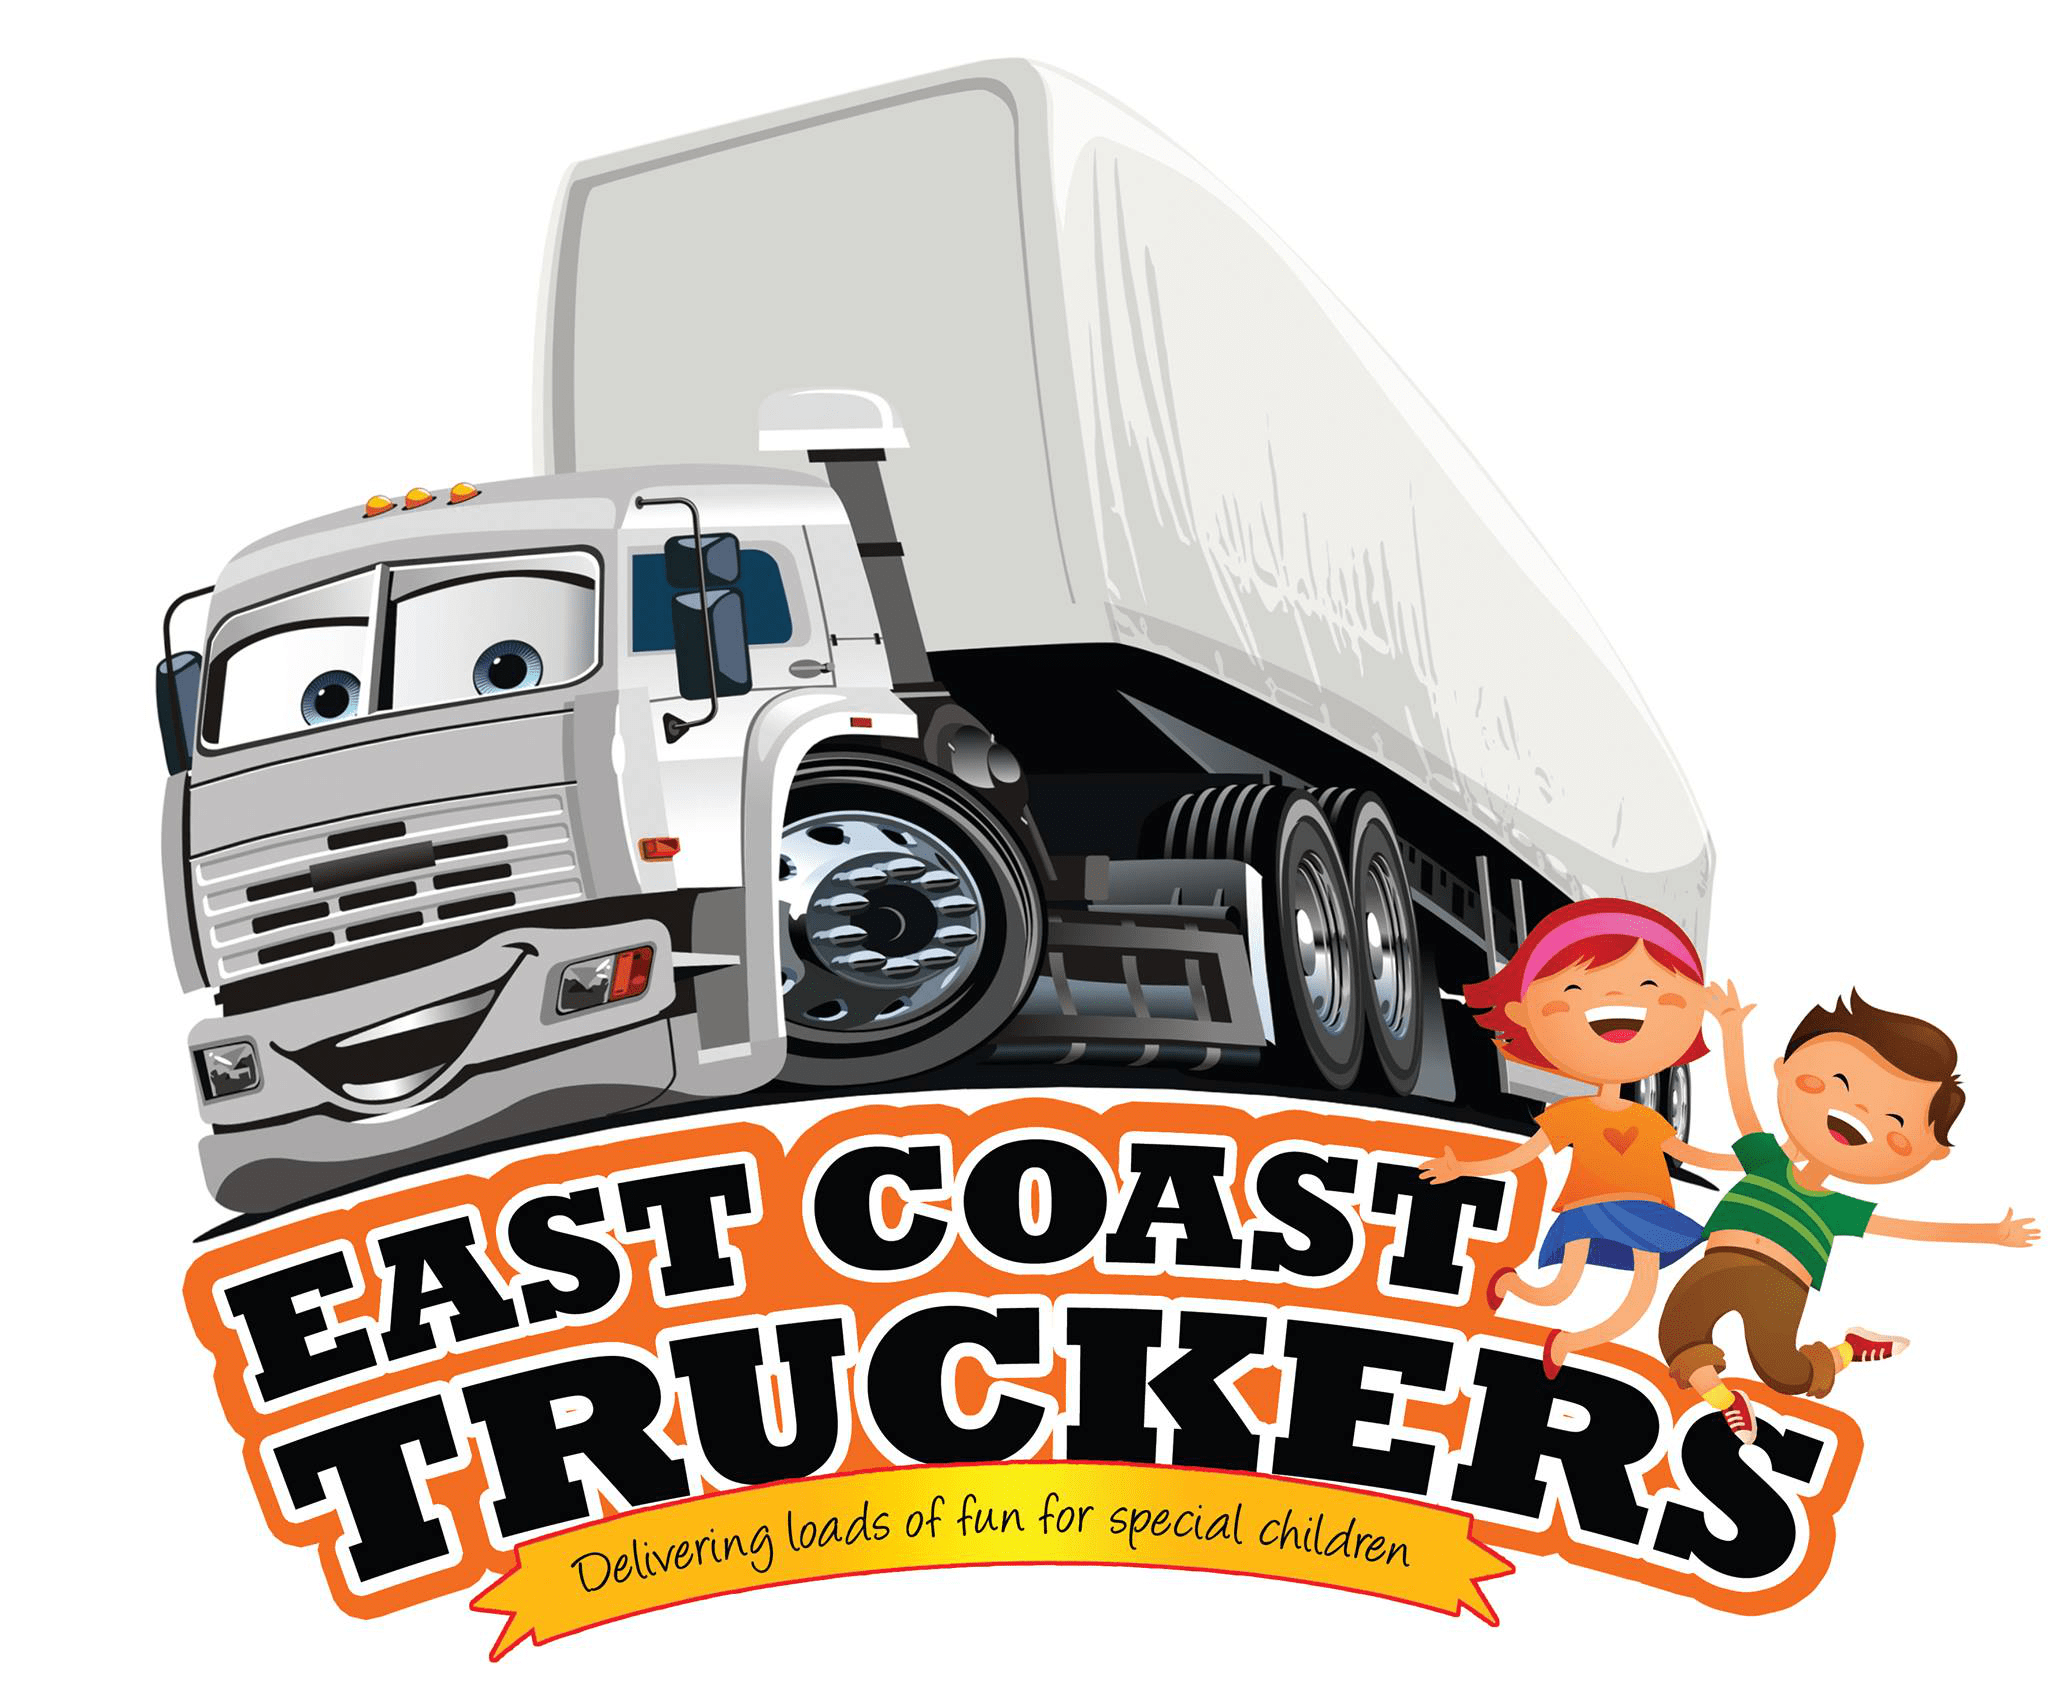 Logo of East Coast Truckers Charity